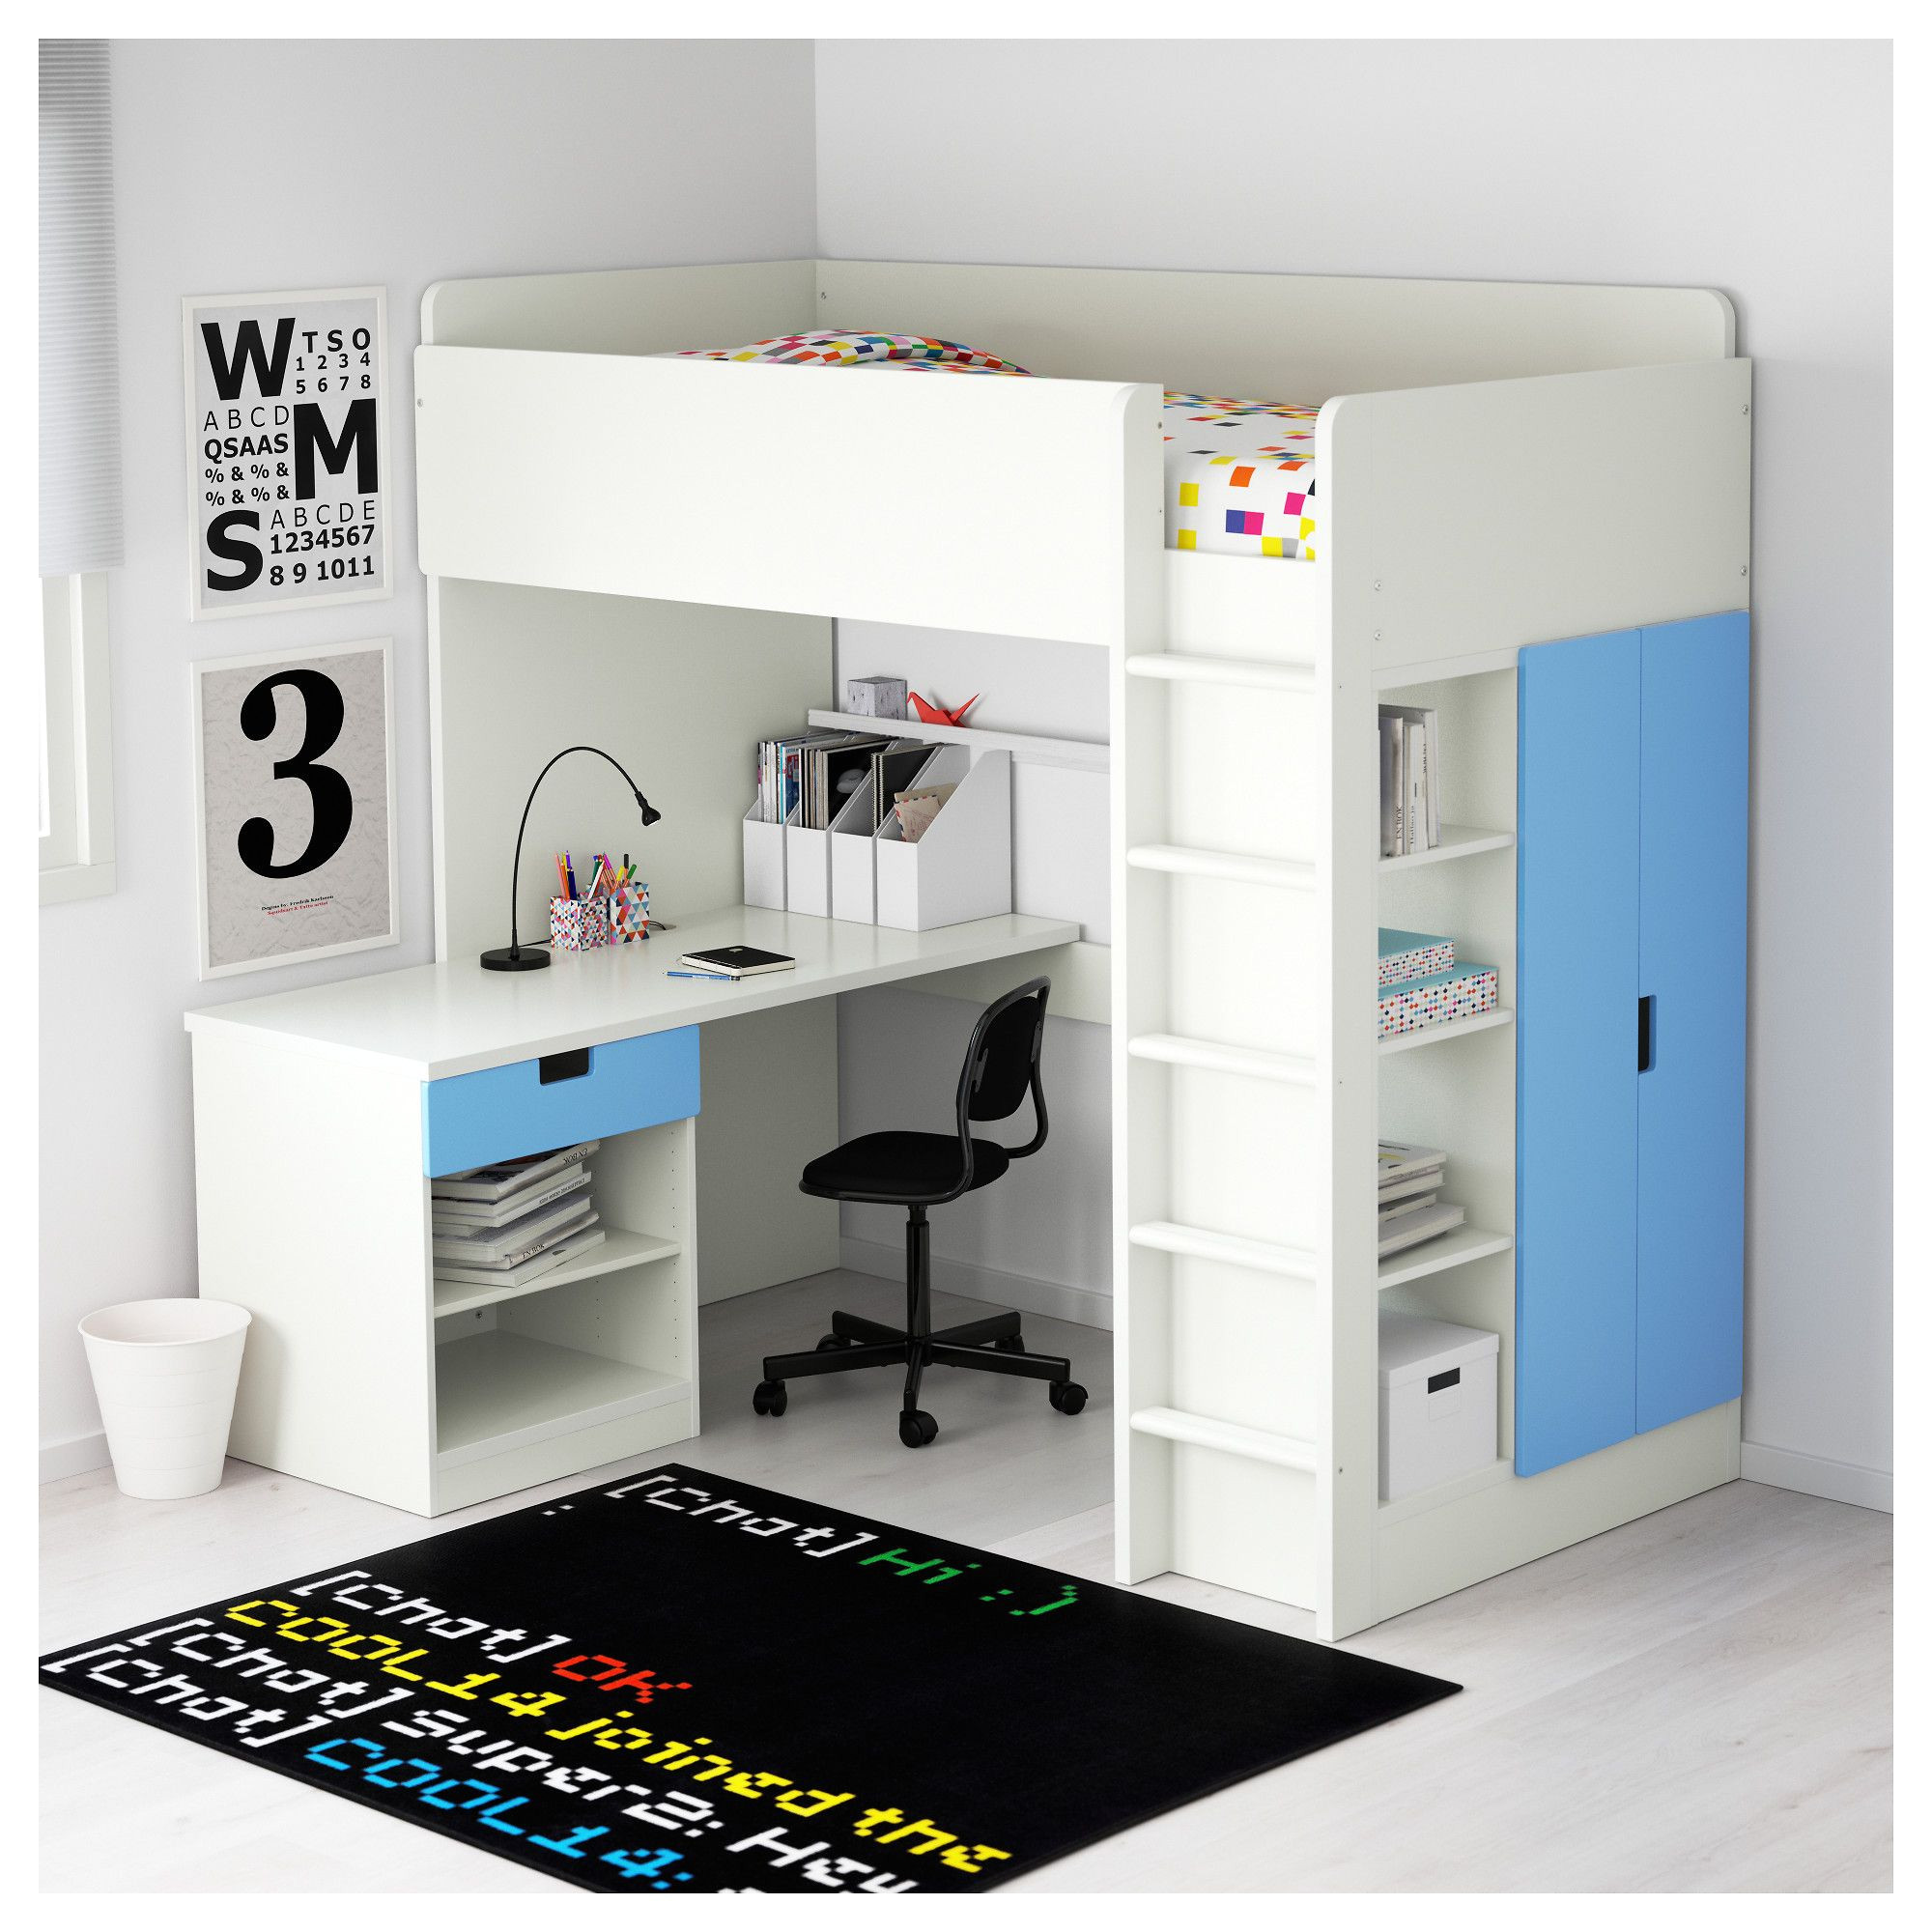 Ikea Stuva Loft Bed Hacks Stuva Loft Bed Combo W 1 Drawer 2 Doors White Blue 207x99x193 Cm